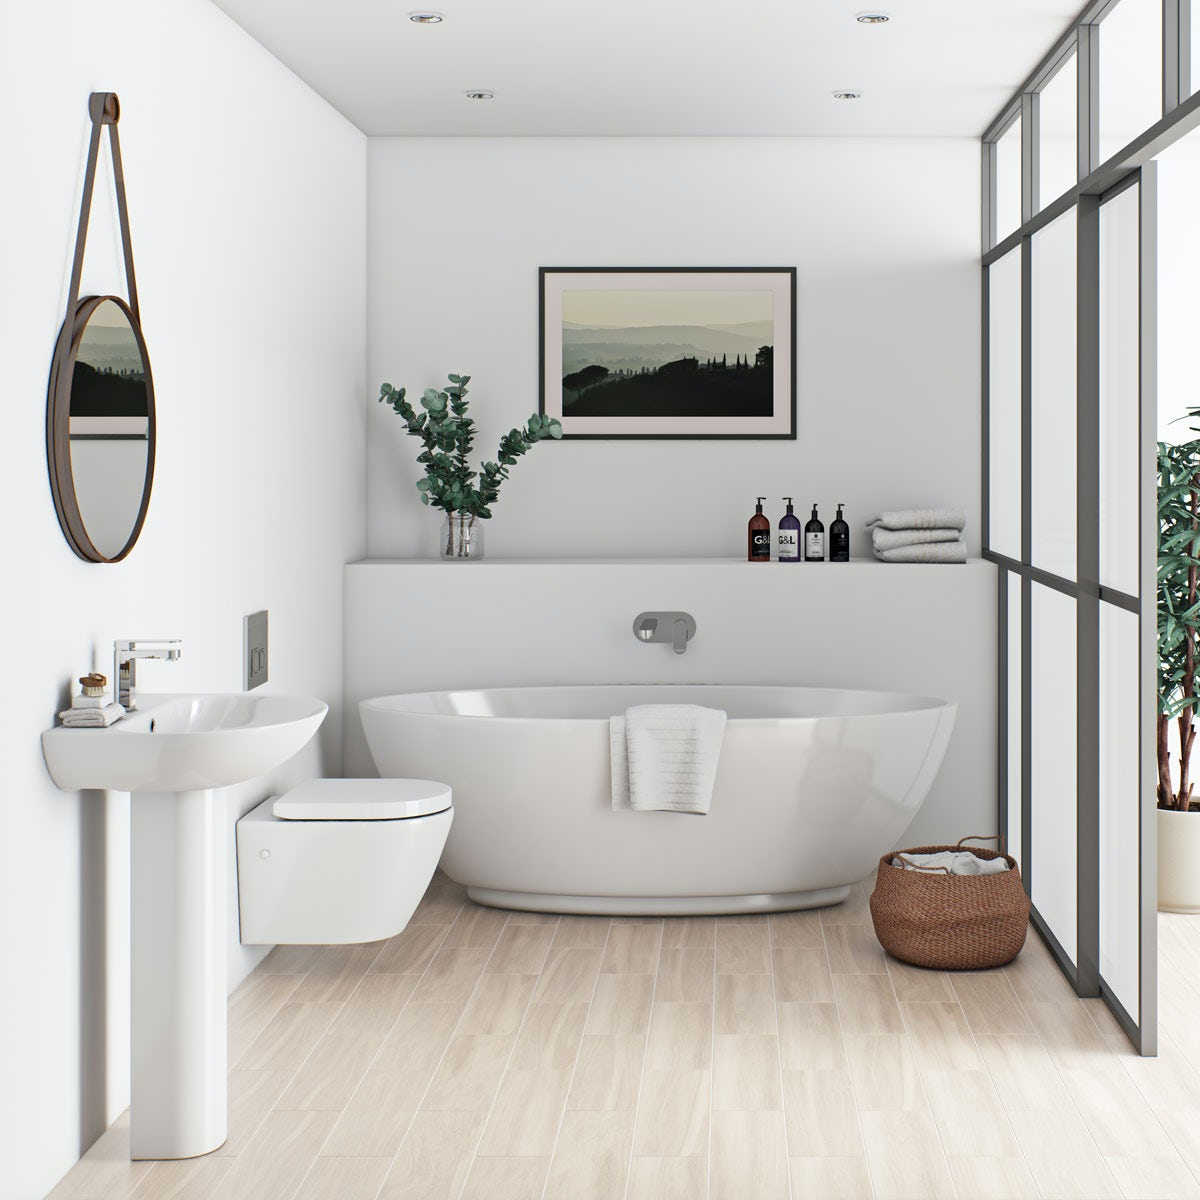 Mode harrison bathroom suite with freestanding bath for Bathroom suites